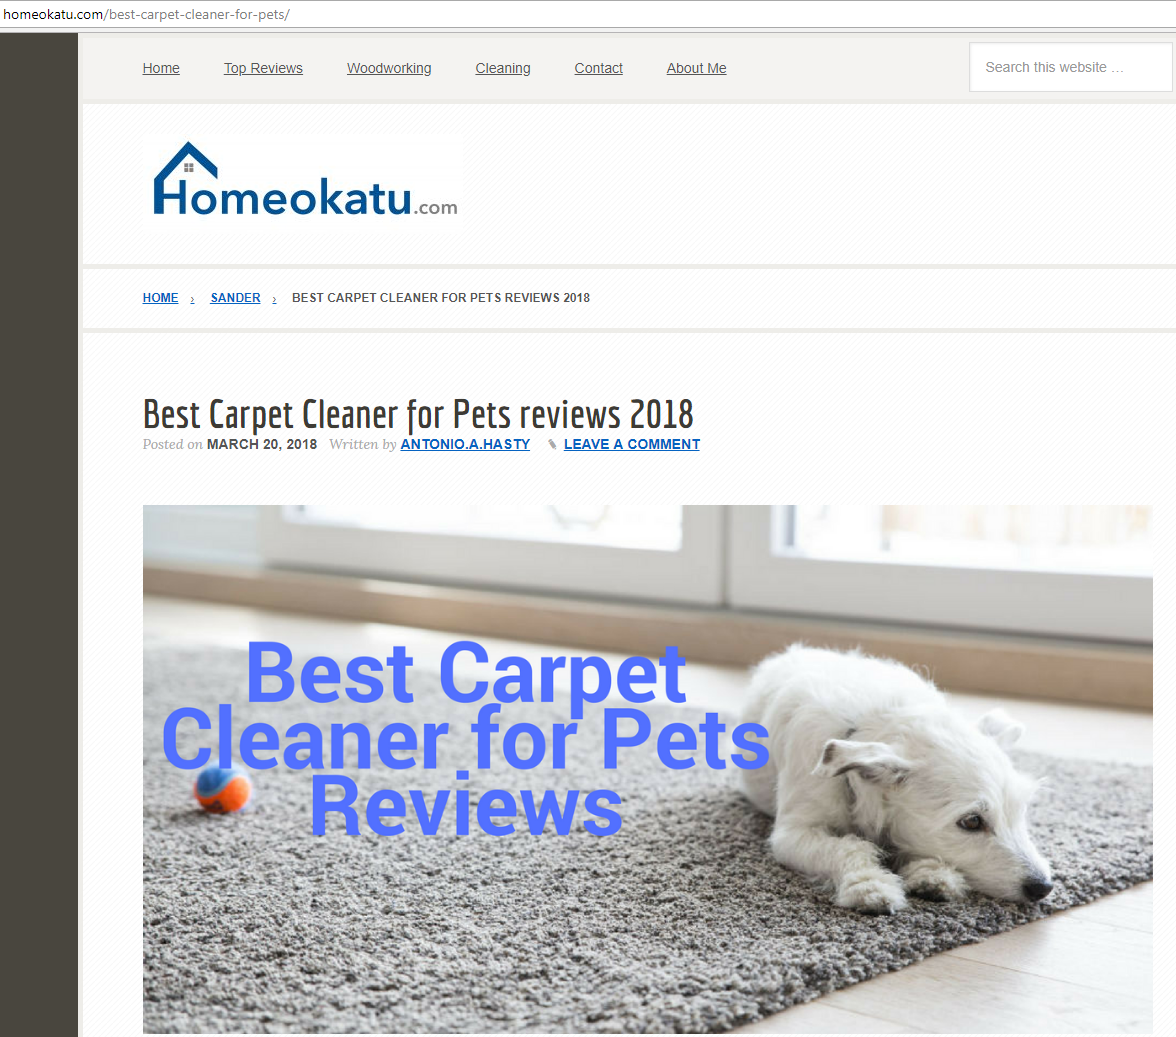 4 Best Handheld Cleaner For Pet Hair Reviews 2018 Carpet Cleaning Pet Stains Clean Car Carpet Pet Urine